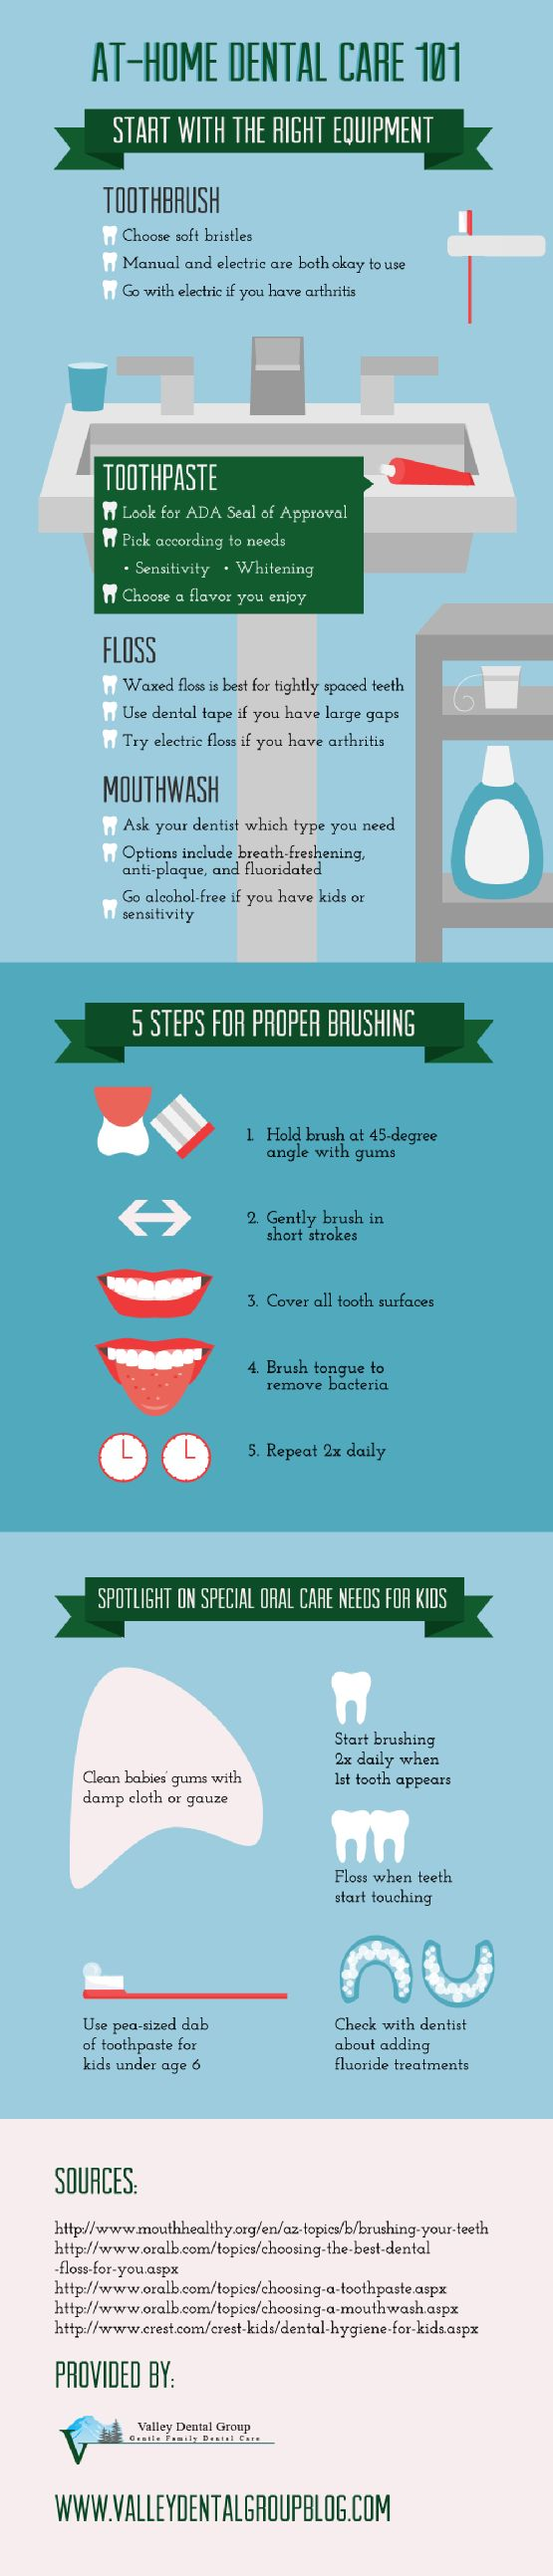 Are you brushing your teeth correctly? Start by hold the brush at a 45-degree angle with your gums. Gently brush in short strokes and cover all tooth surfaces. Take a look at this infographic from a pediatric dentist in Renton to learn more about proper brushing.